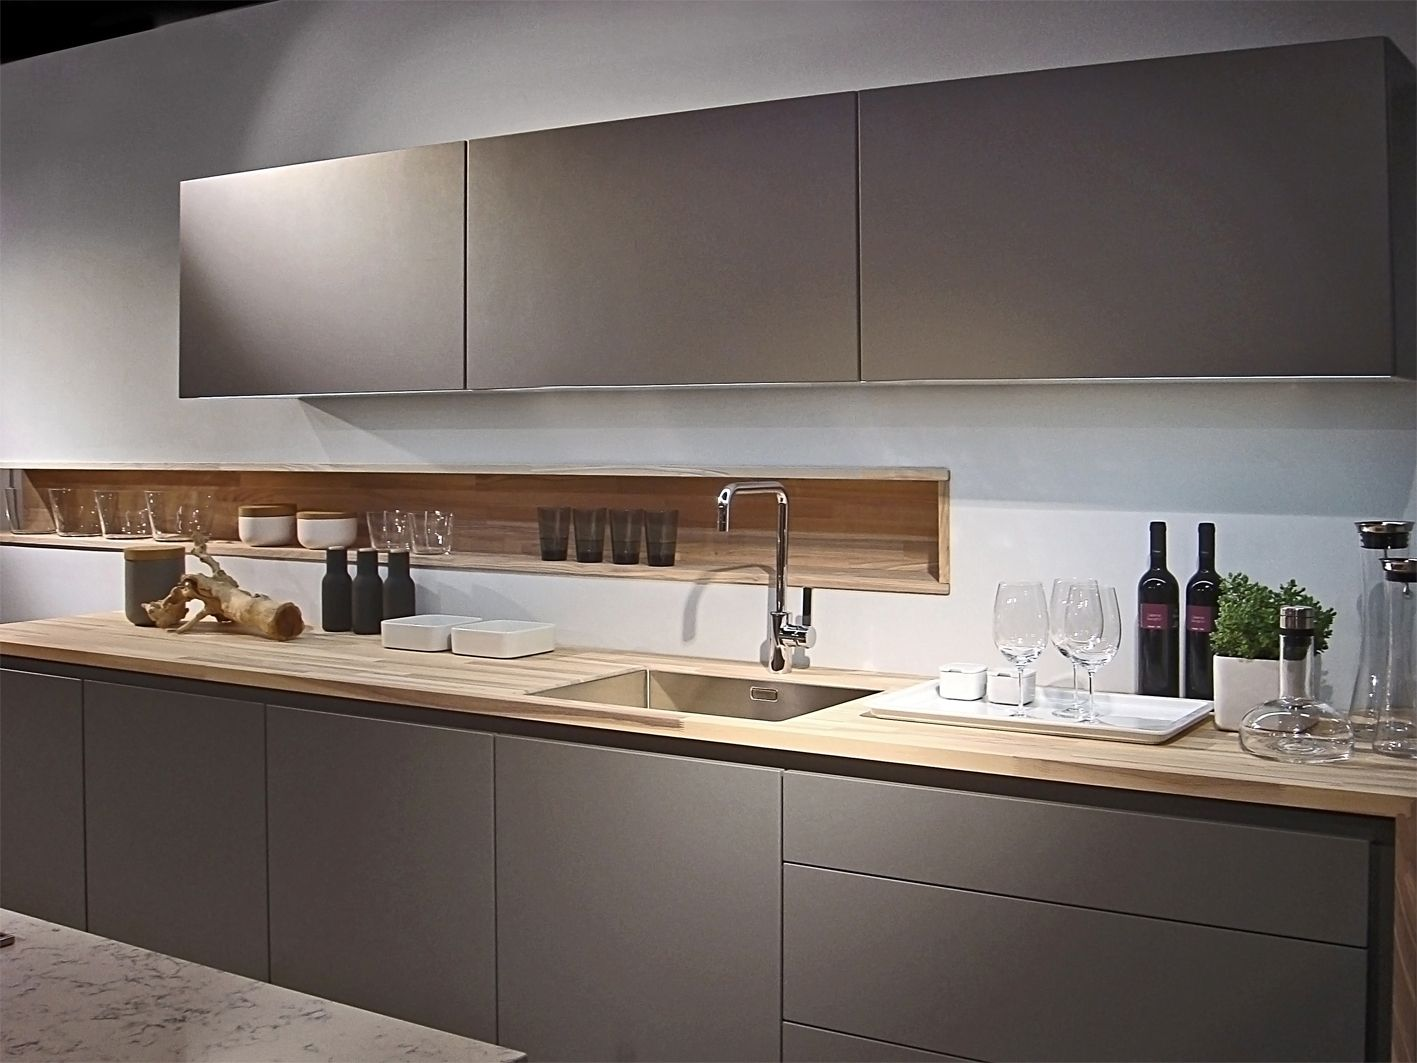 """""""A grey that contrary to what already existed could combine with warmer colours and get into our cosy kitchens, even warmer and inviting environments."""" - affirms Manfred Junker, Poggenpohl Chef Designer"""